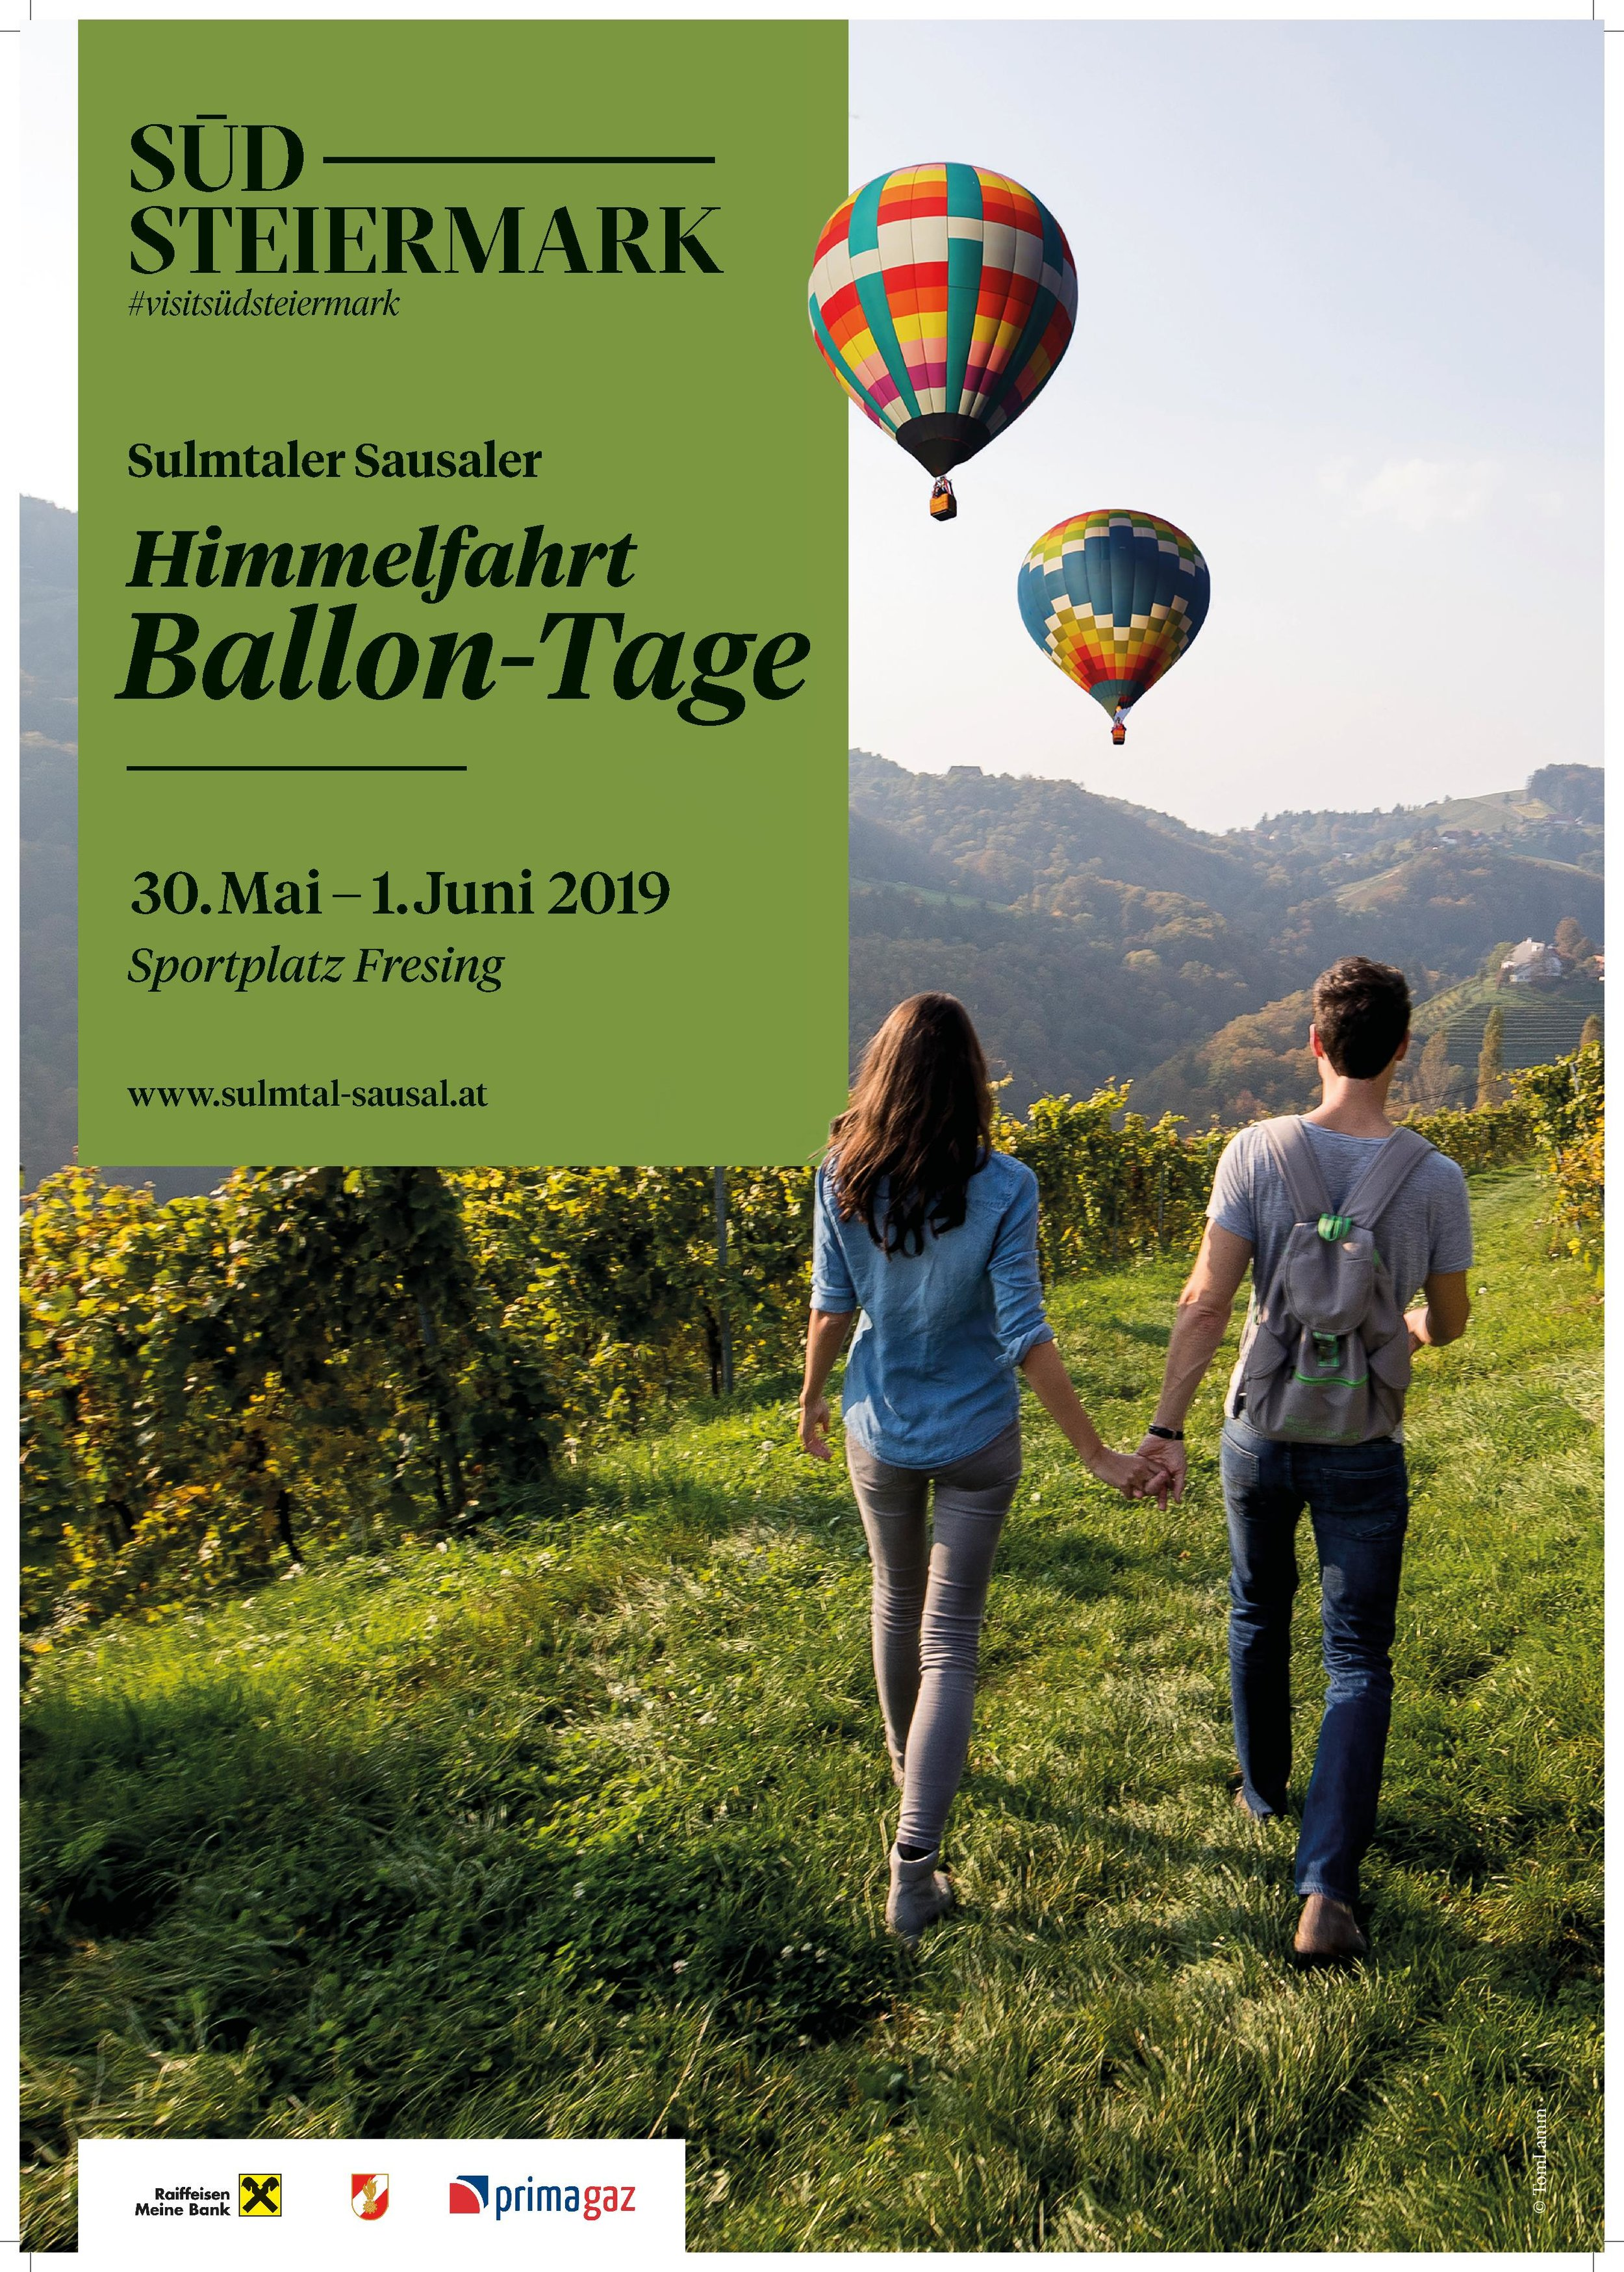 190423_Plakat_Ballontage_A2_DRUCK (1)-page-001.jpg